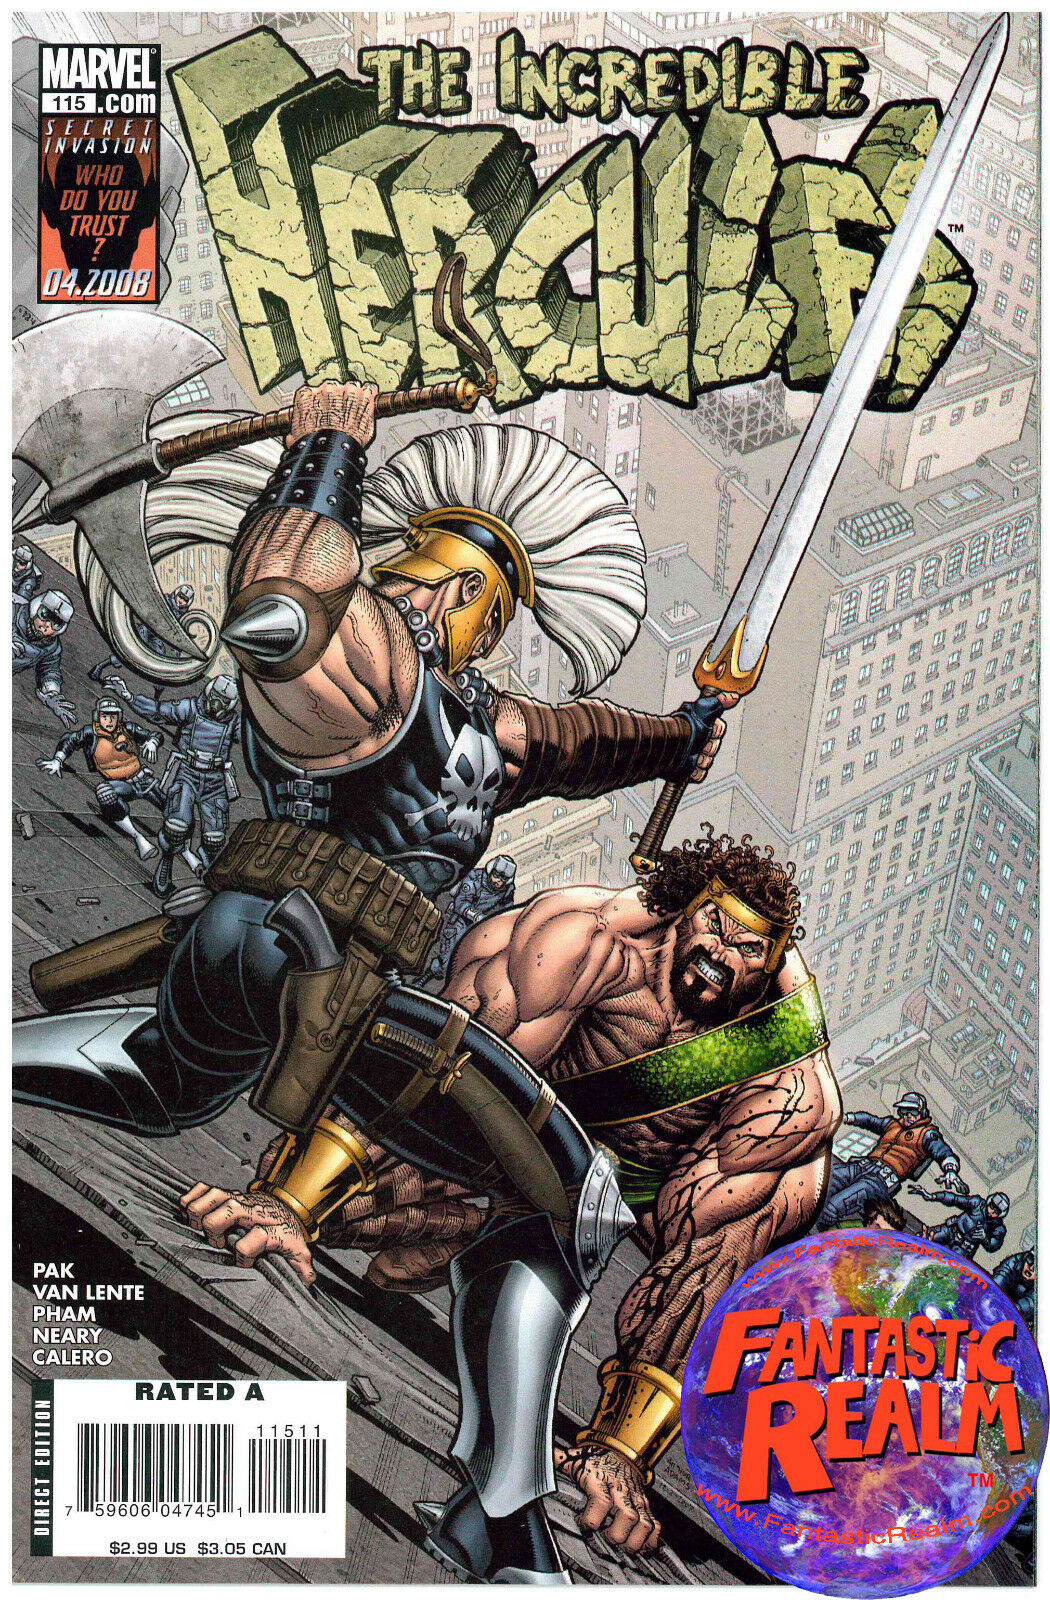 THE INCREDIBLE HERCULES #115 1ST PRINT MARVEL COMICS